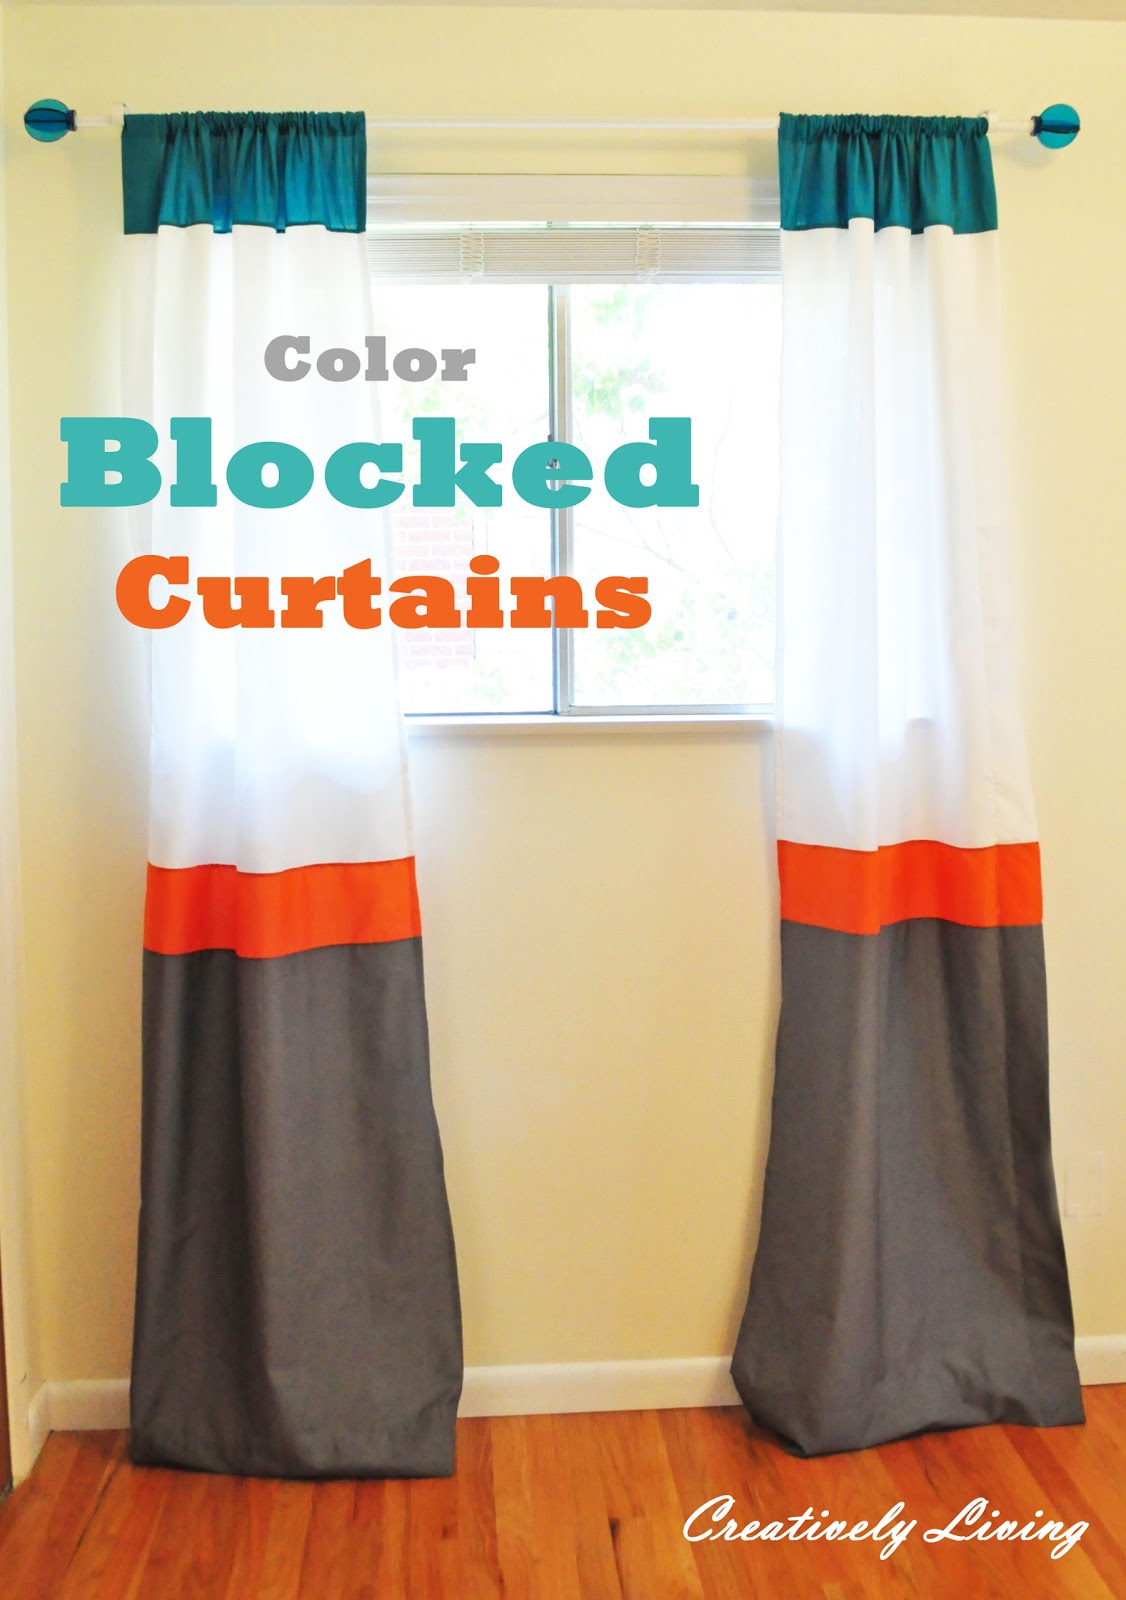 Orange color block curtains - She And Her Husband Wanted To Use Turquoise And Orange And They Wanted It To Have A Modern Or Retro Vibe